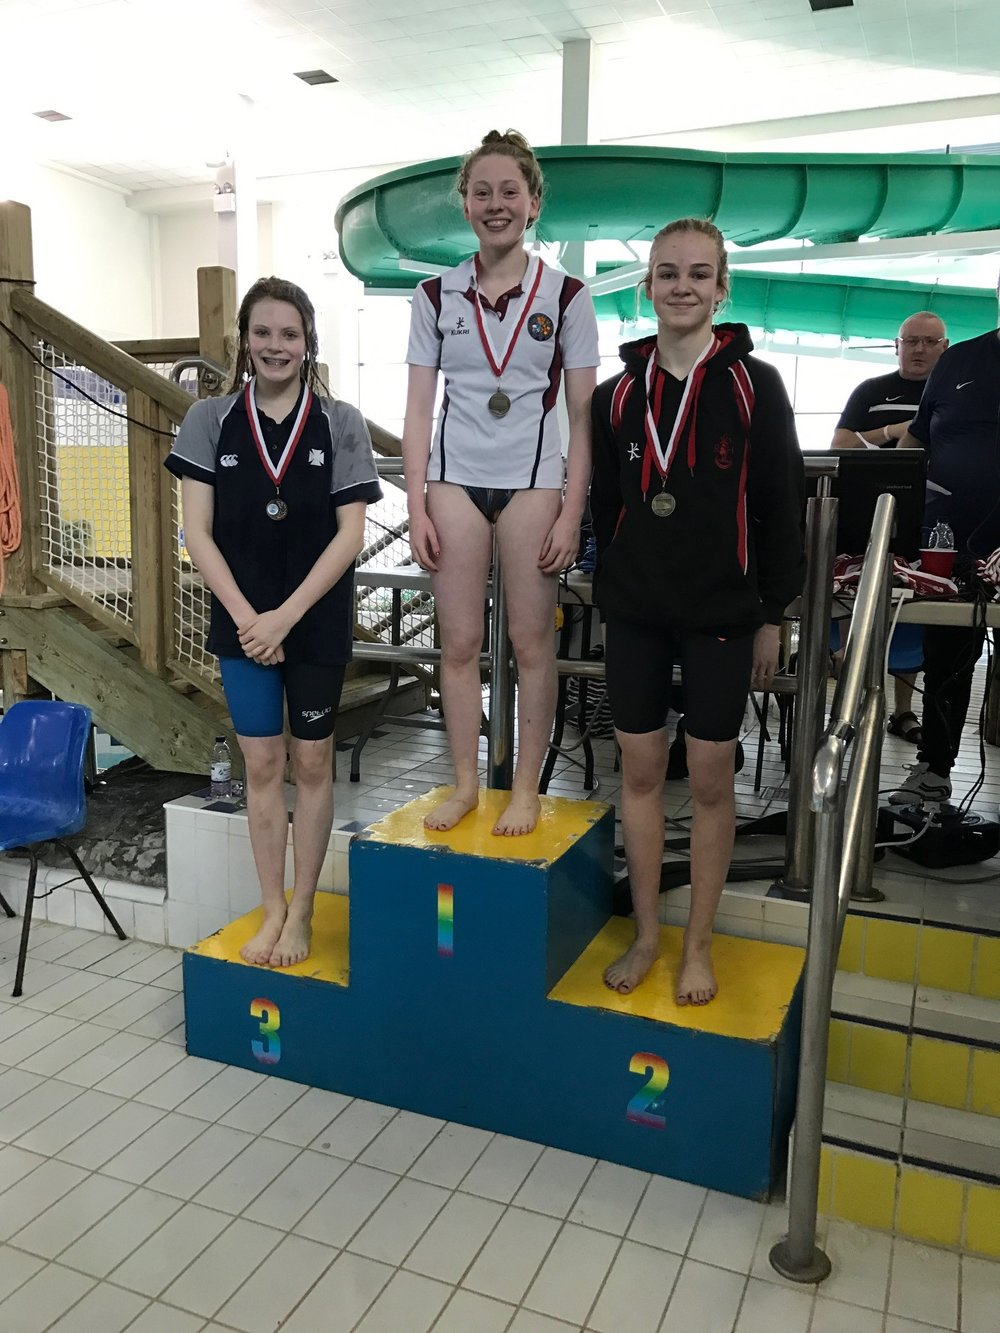 Madelyn Calvert - came 2nd in the junior 100m backstroke and 3rd in the 100m freestyle